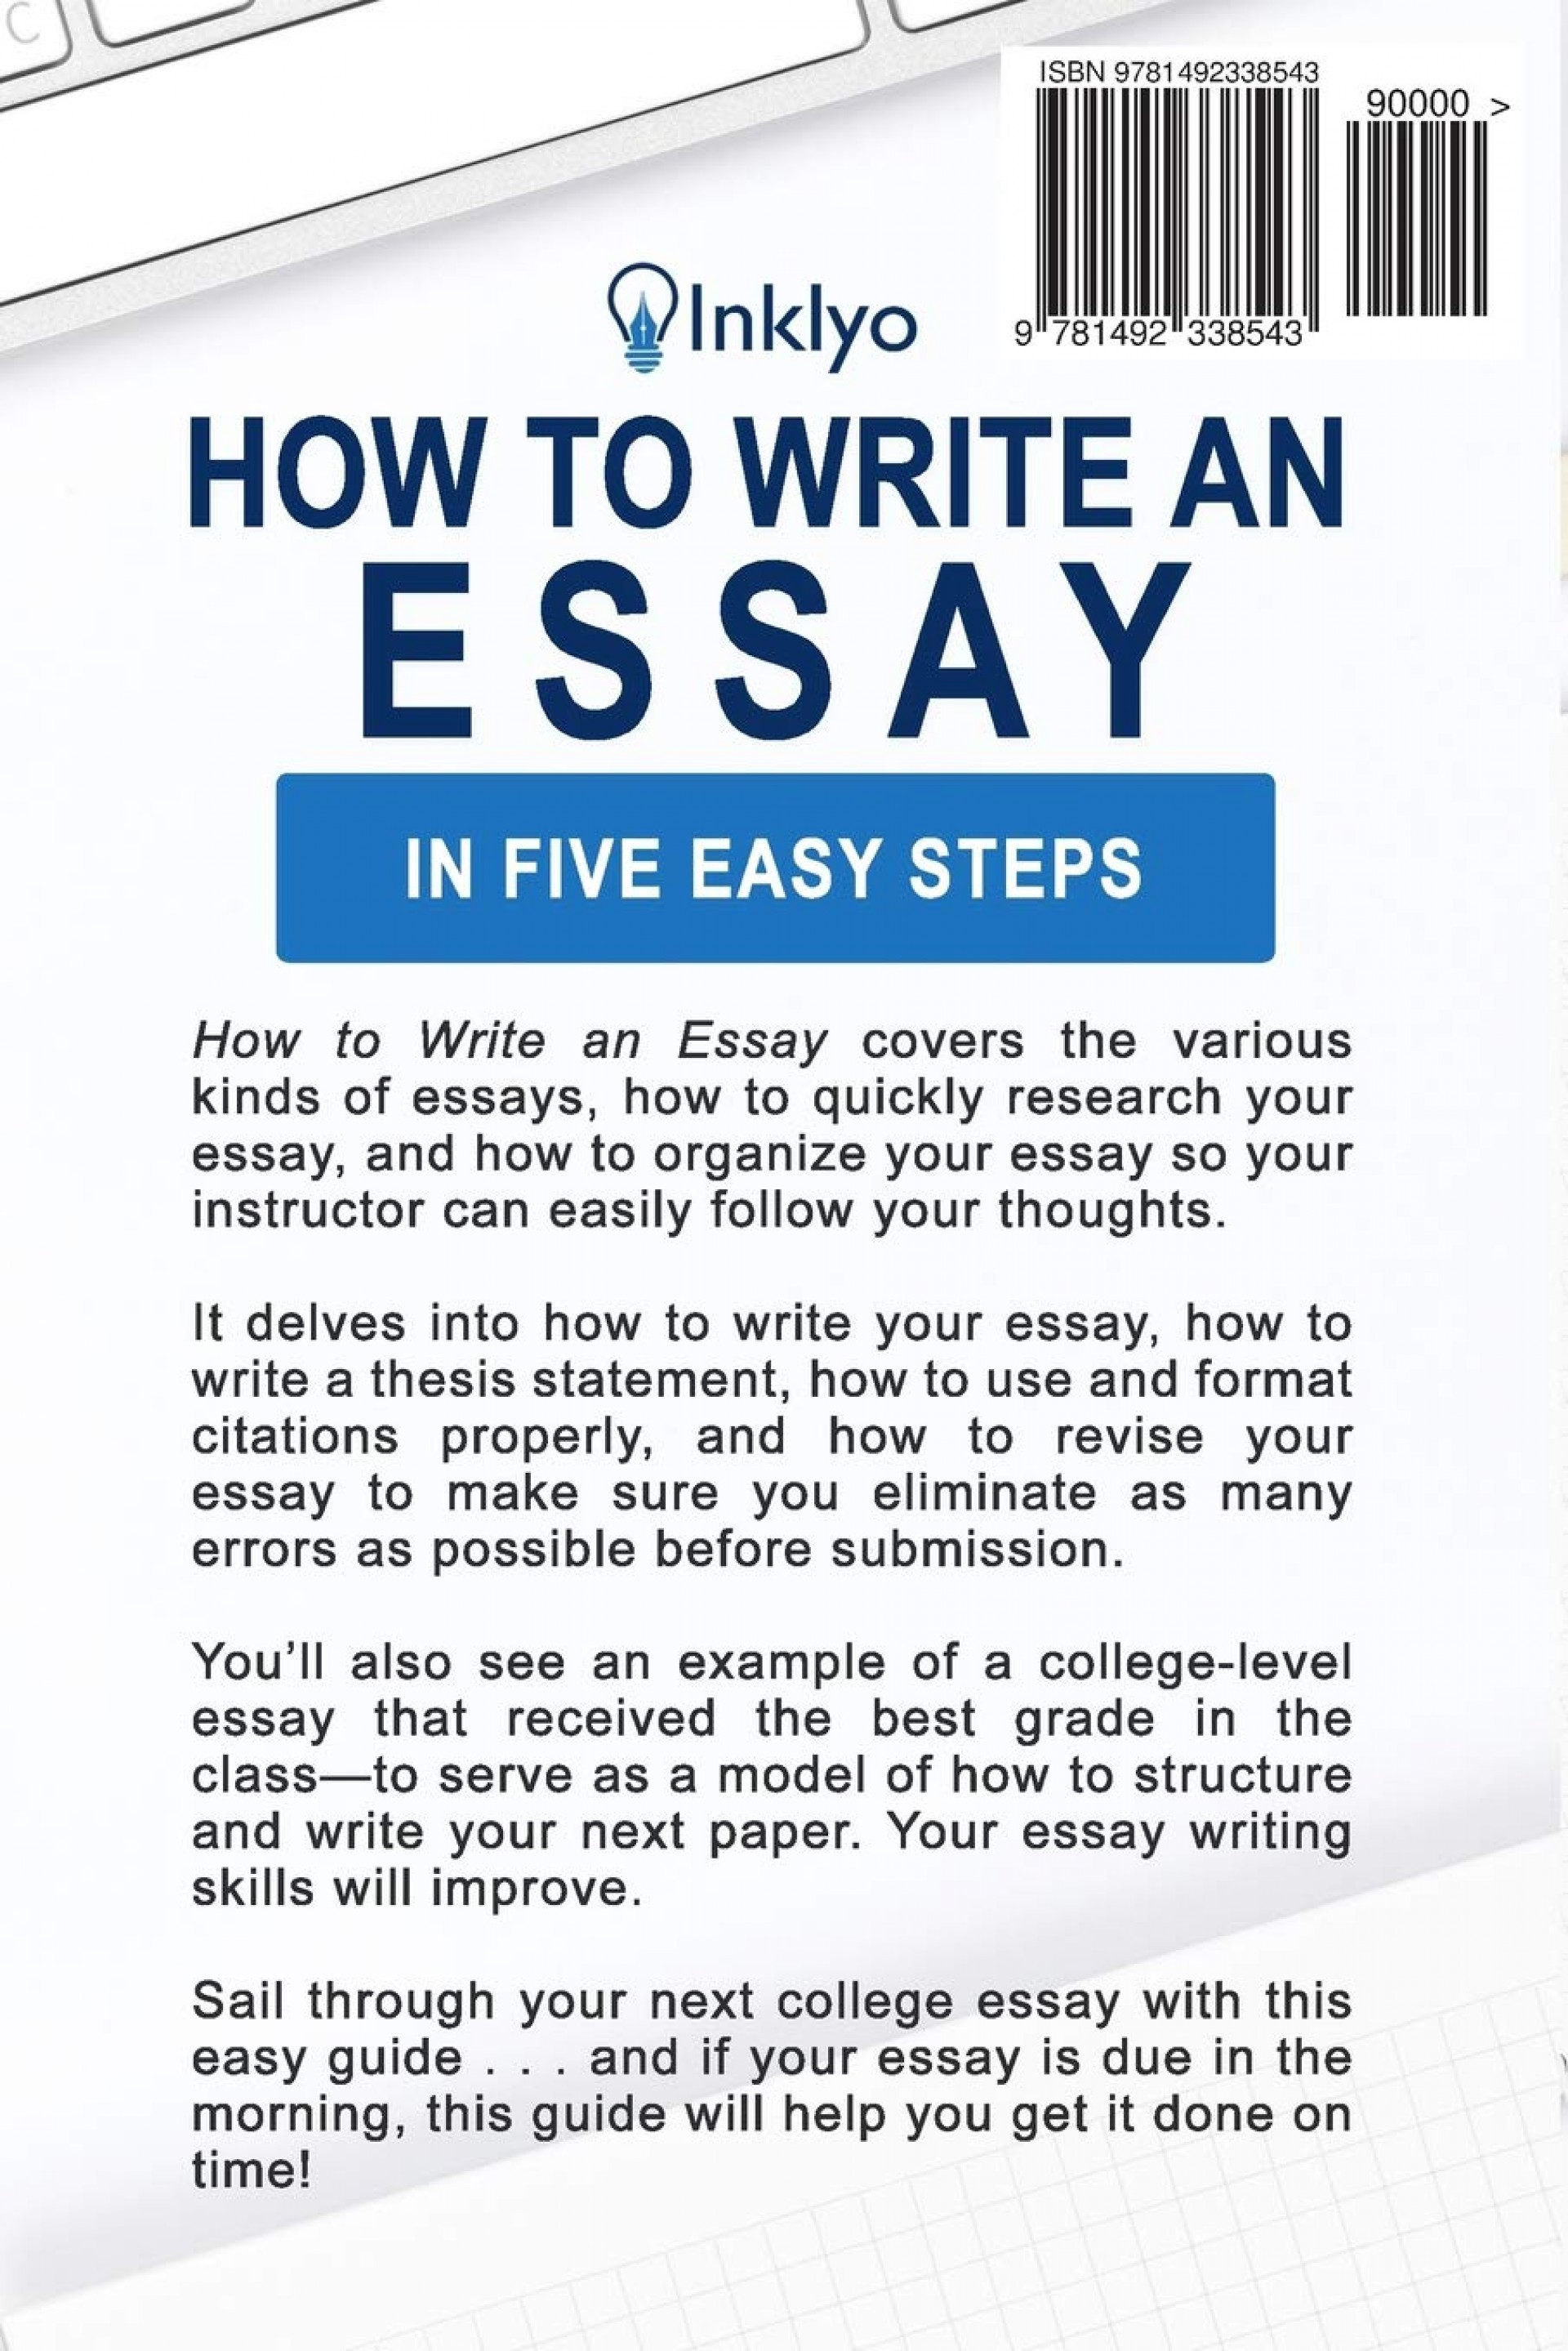 005 Easy Essay Writing Example Marvelous Examples Ielts Tips Task 2 Topics 1920